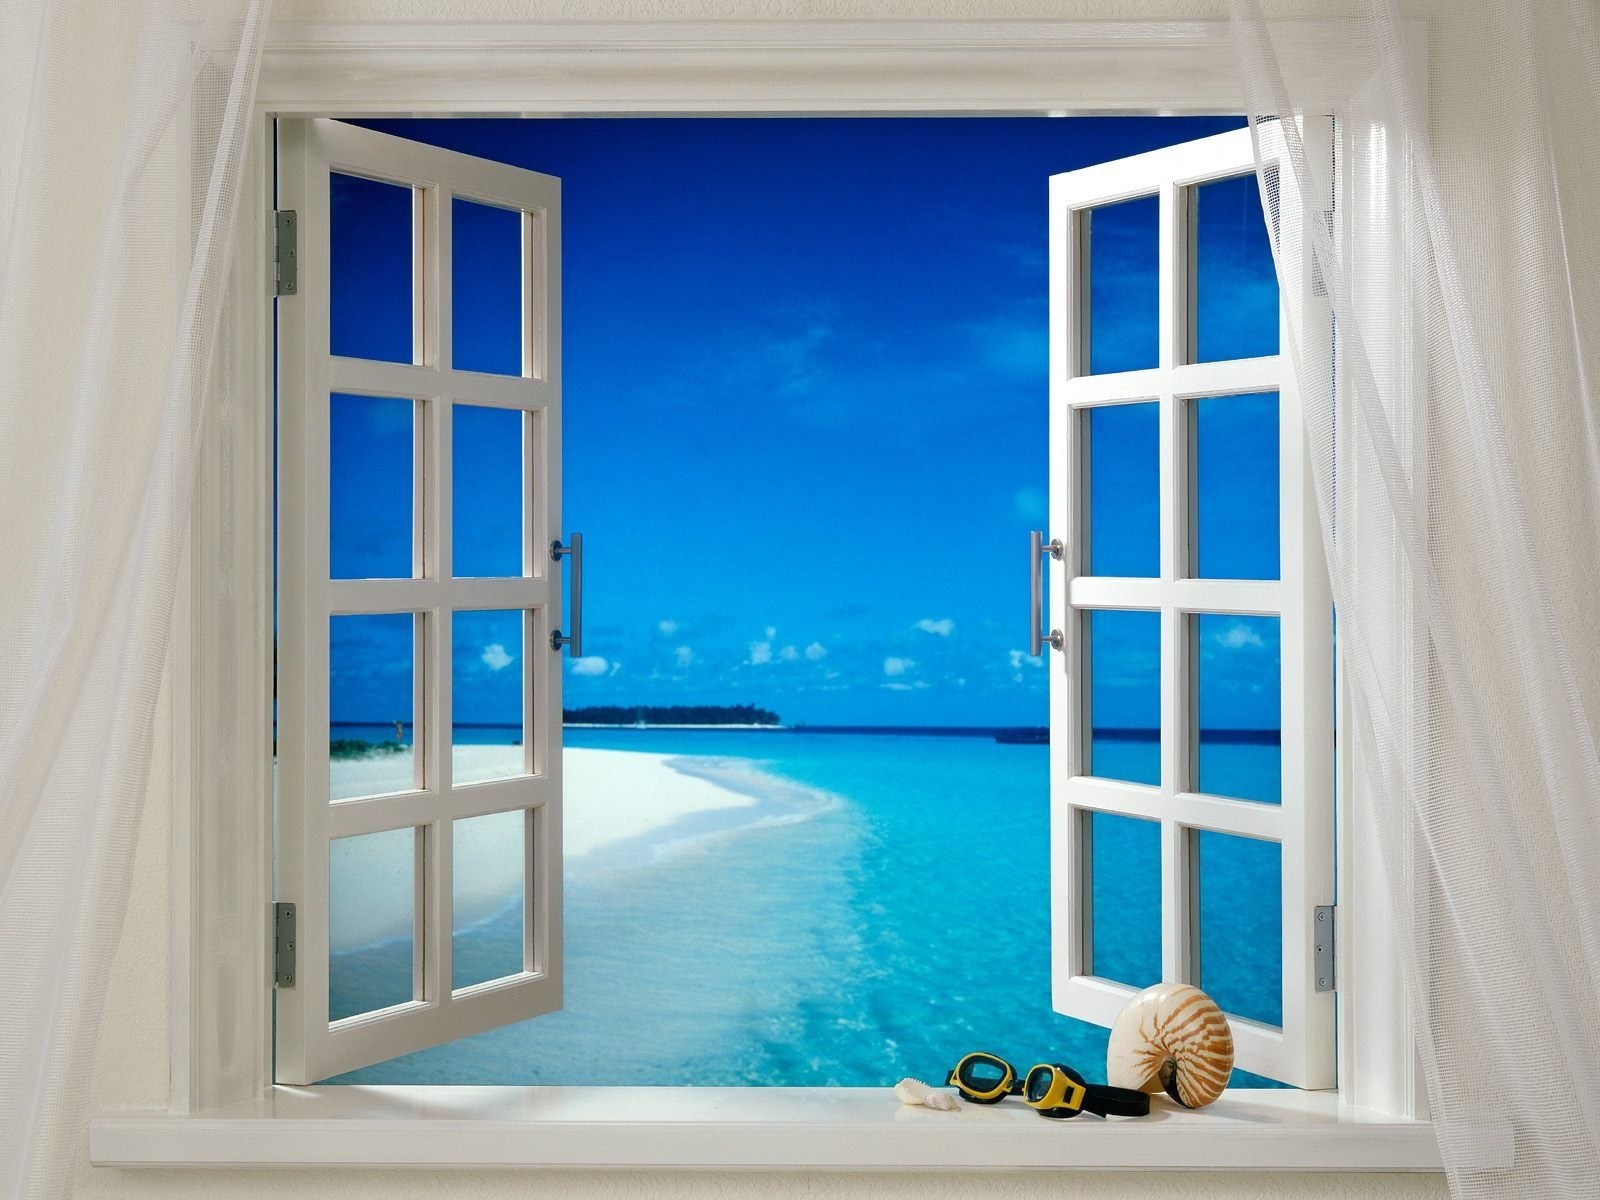 Open window beach - Find This Pin And More On Outdoors Inside Looking Out Beach Beckoning Through Open Window